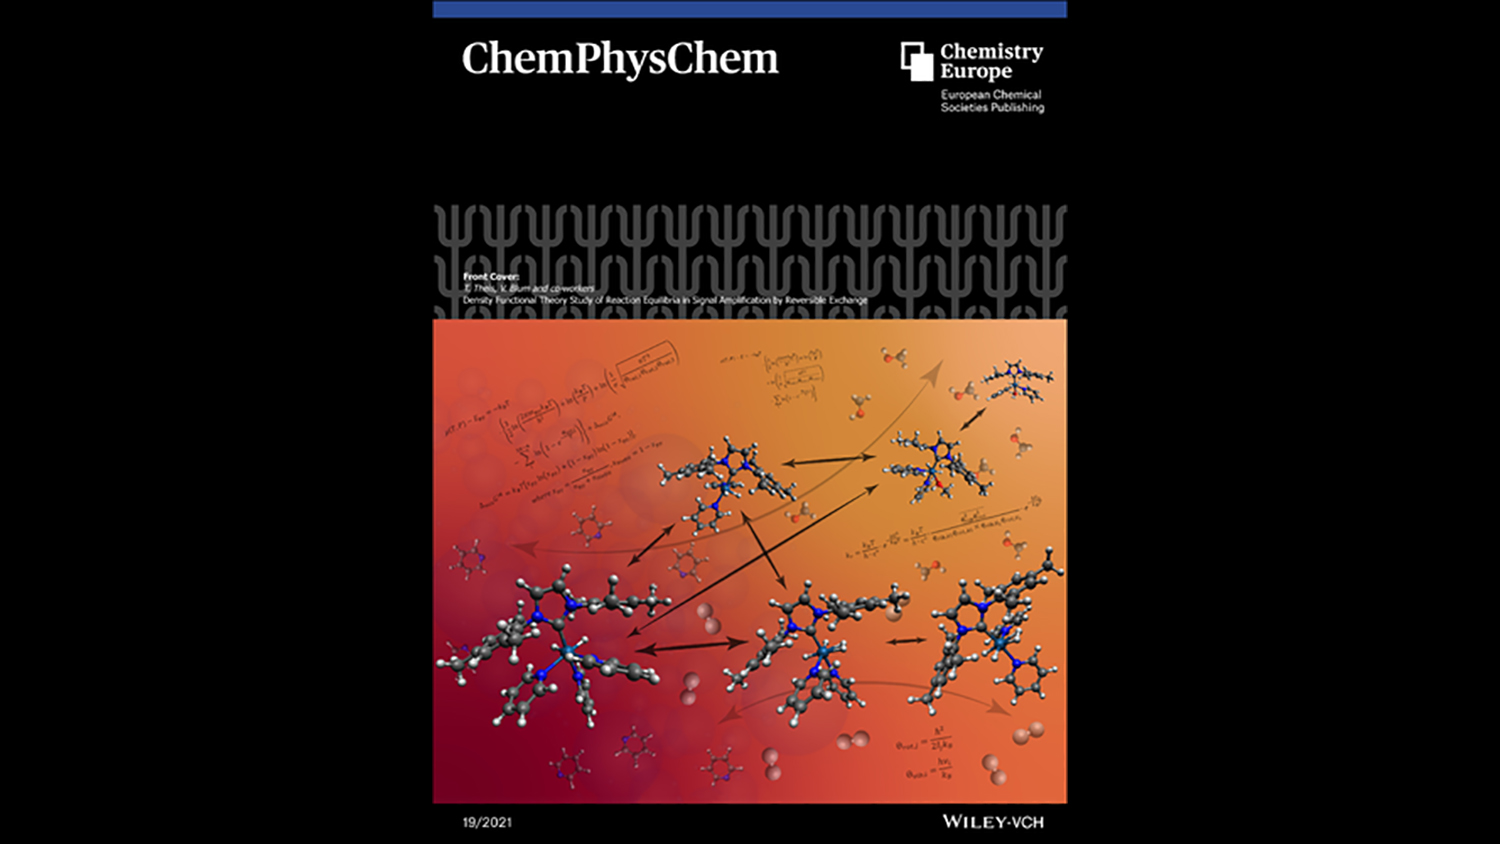 The Front Cover shows the reaction network of Signal Amplification by Reversible Exchange (SABRE), elucidated by density functional theory (DFT).